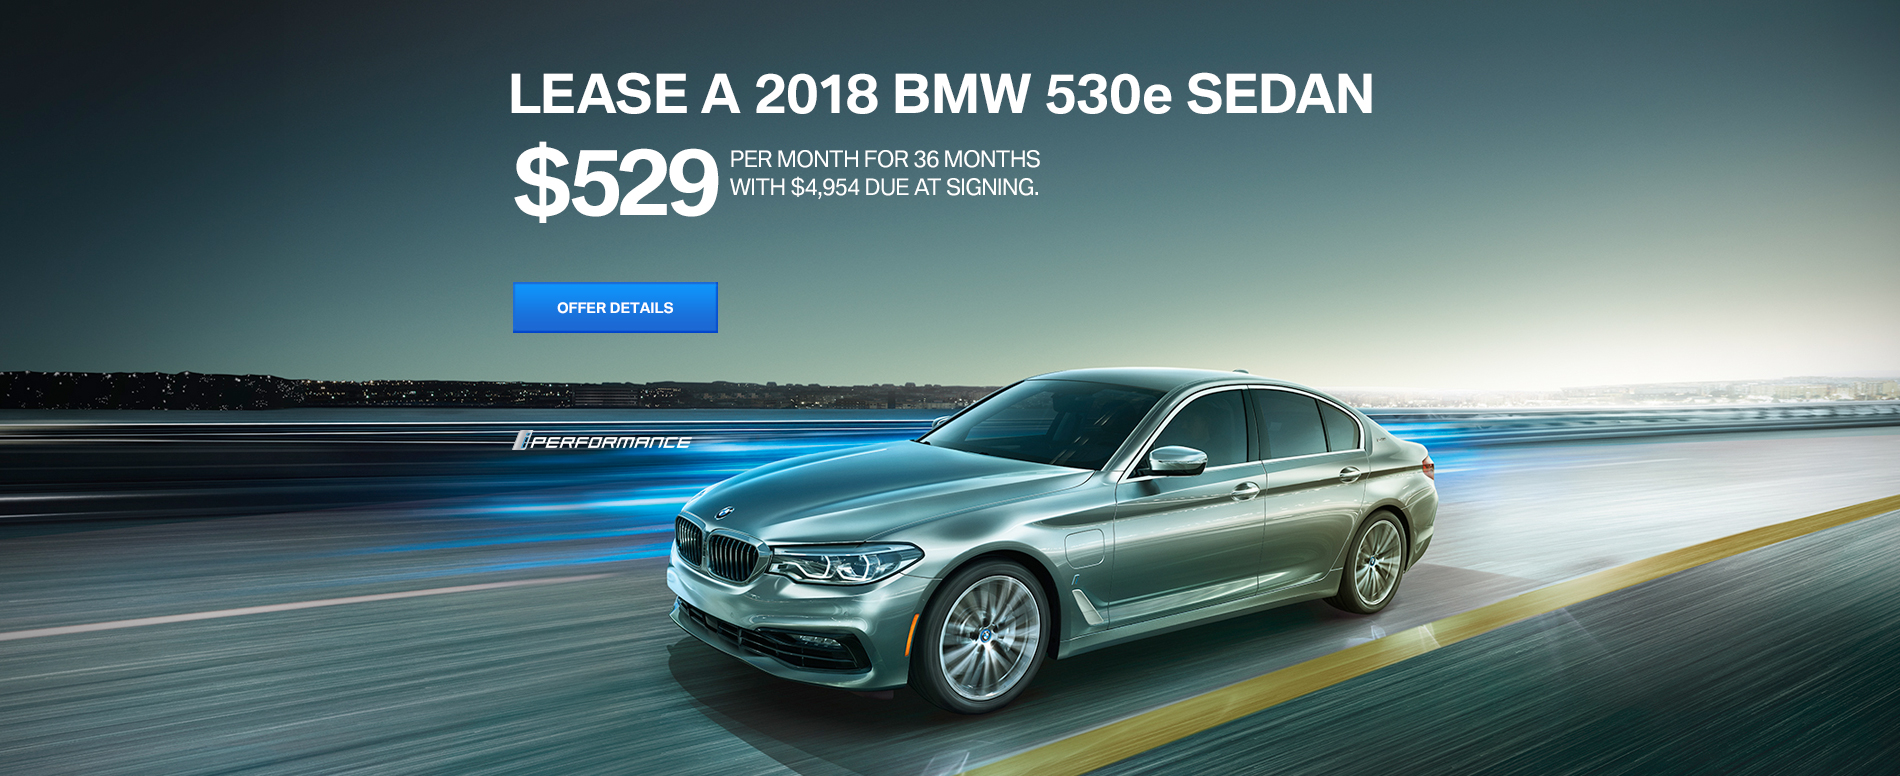 LEASE A 2018 BMW 530e iPERFORMANCE PLUG-IN ELECTRIC FOR $529 /MO